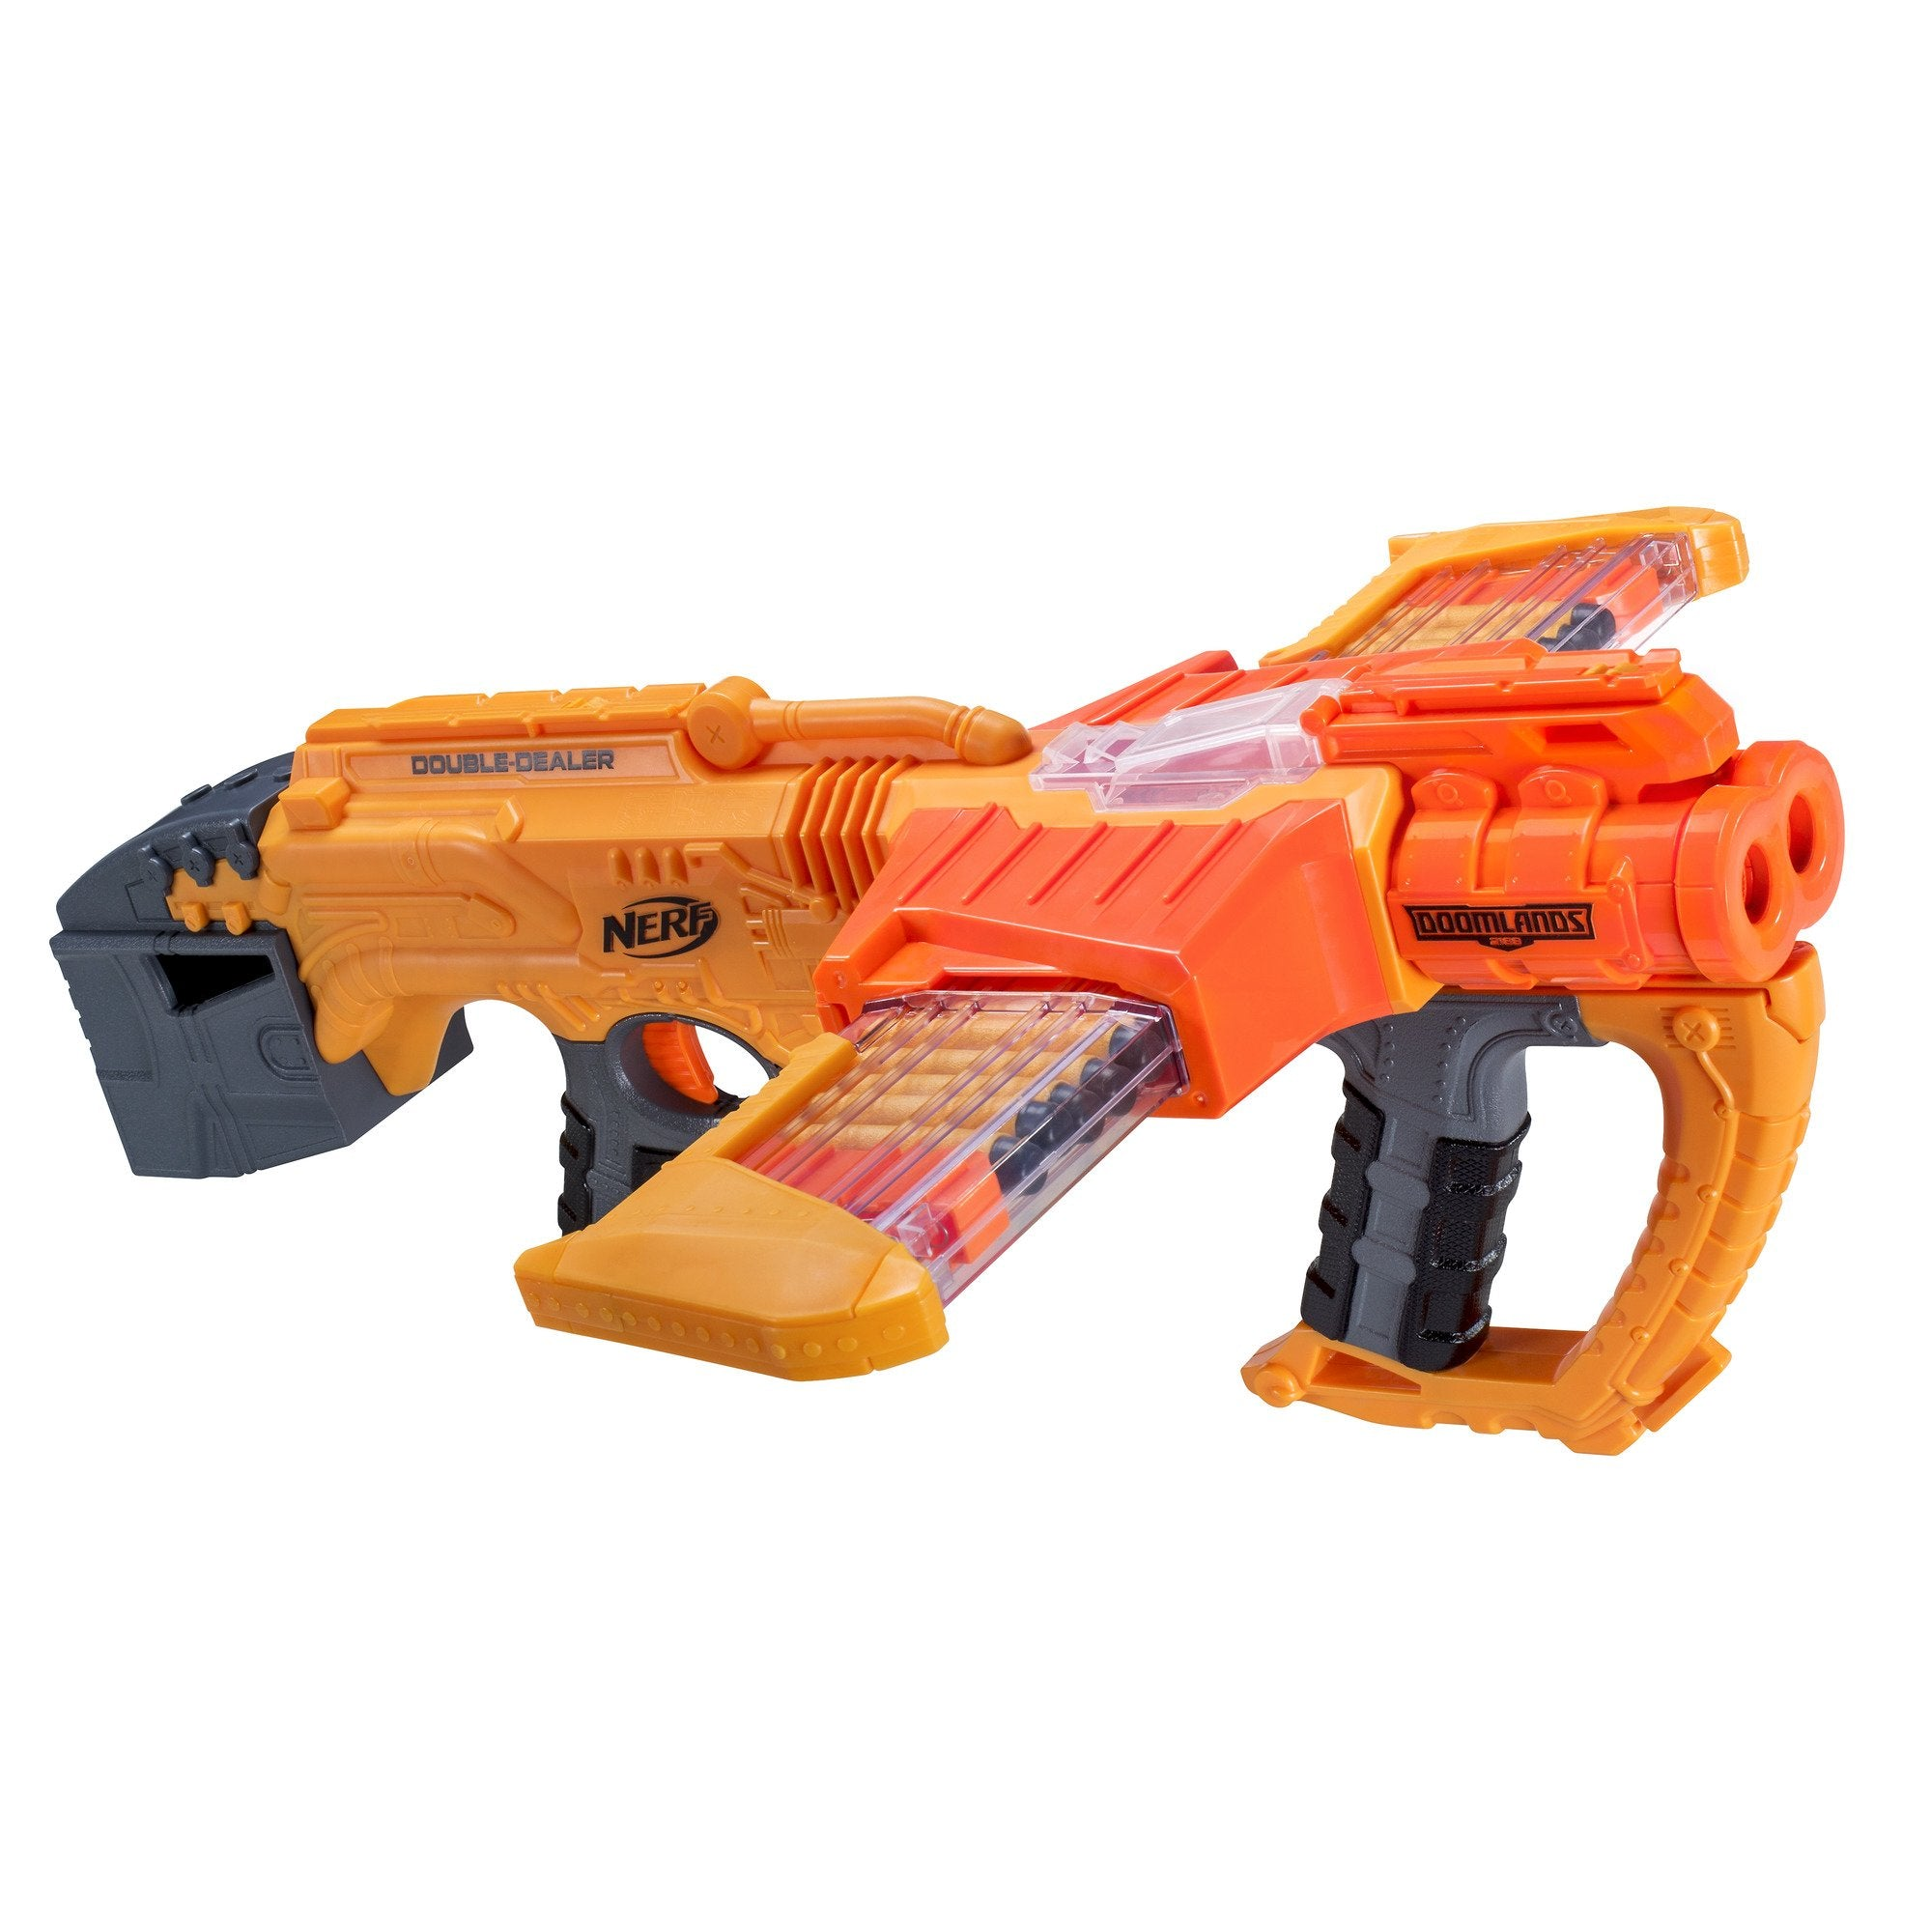 NERF Doomlands Blaster Double Dealer Toy Blaster with Two 12-Dart Clips & 24 Official Elite Darts for Kids, Teens, & Adults, Orange, Standard - wiihuu